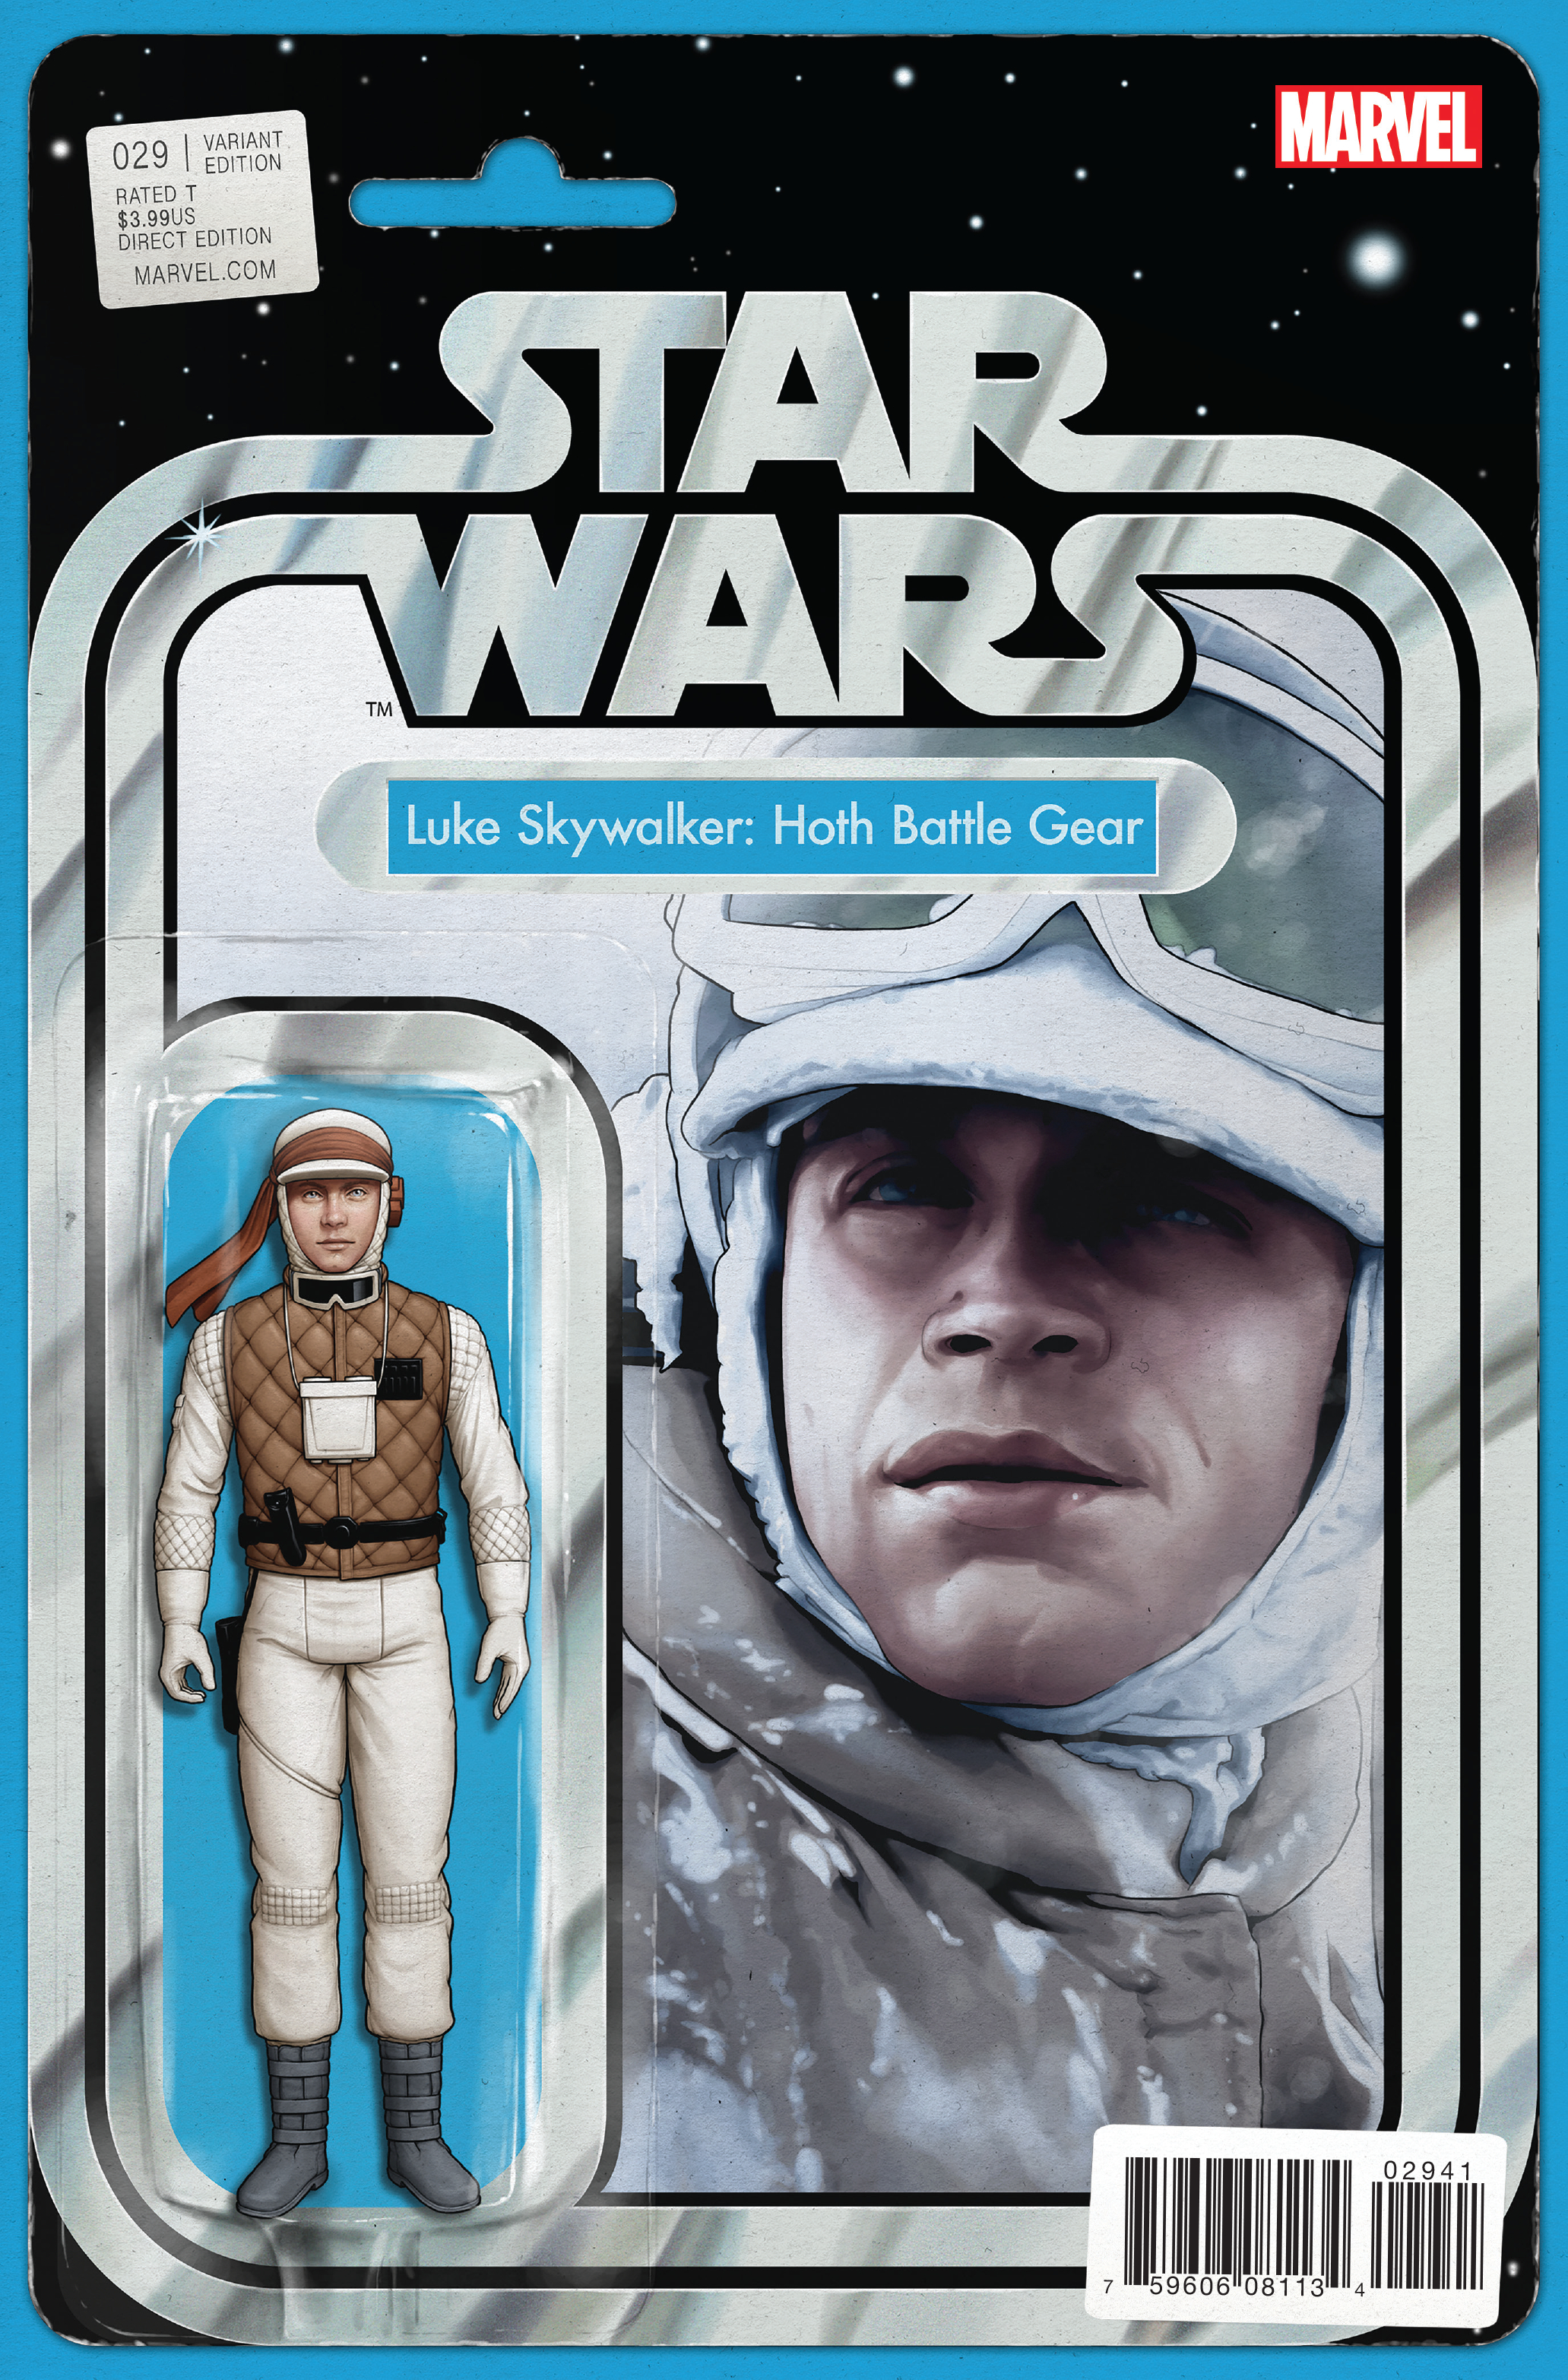 STAR WARS #29 CHIRSTOPHER ACTION FIGURE VAR